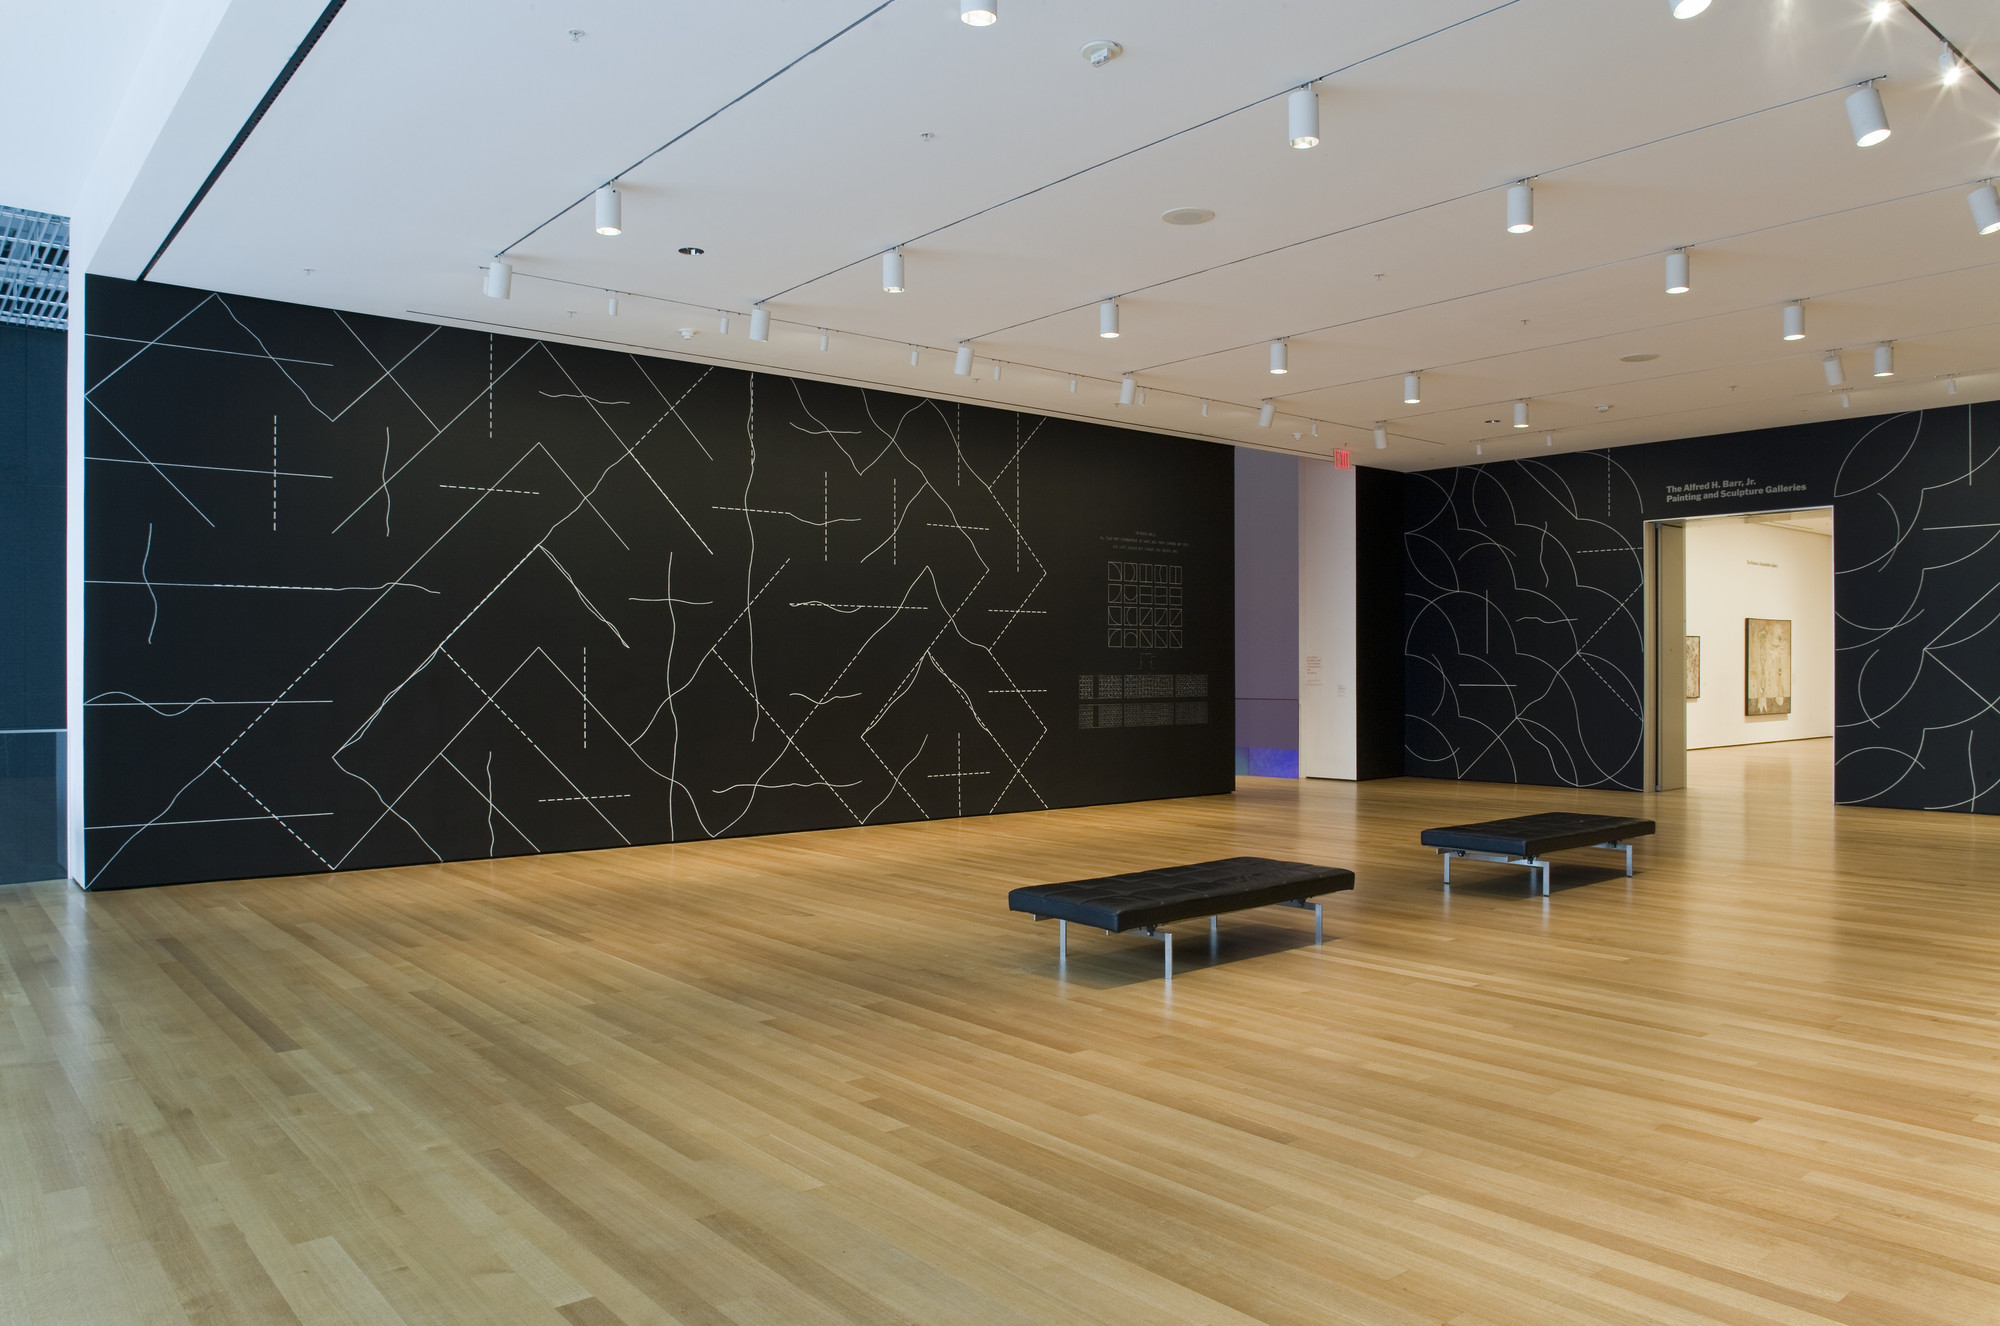 Sol LeWitt. Wall Drawing #260, On Black Walls, All Two-Part Combinations of White Arcs from Corners and Sides, and White Straight, Not-Straight, and Broken Lines. 1975